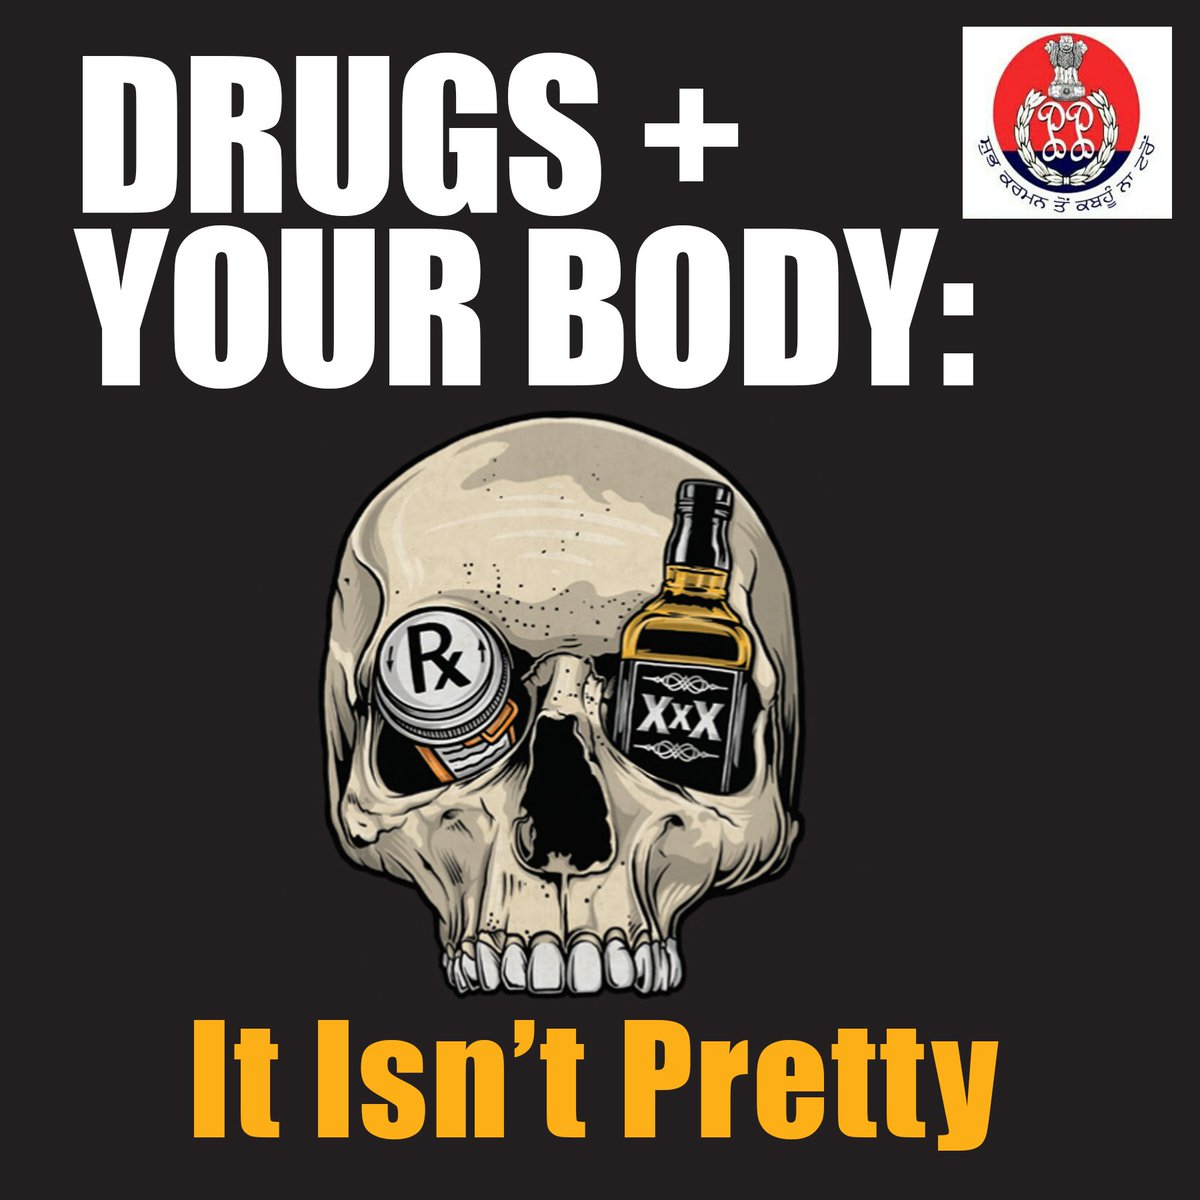 say no to drugs yes to life